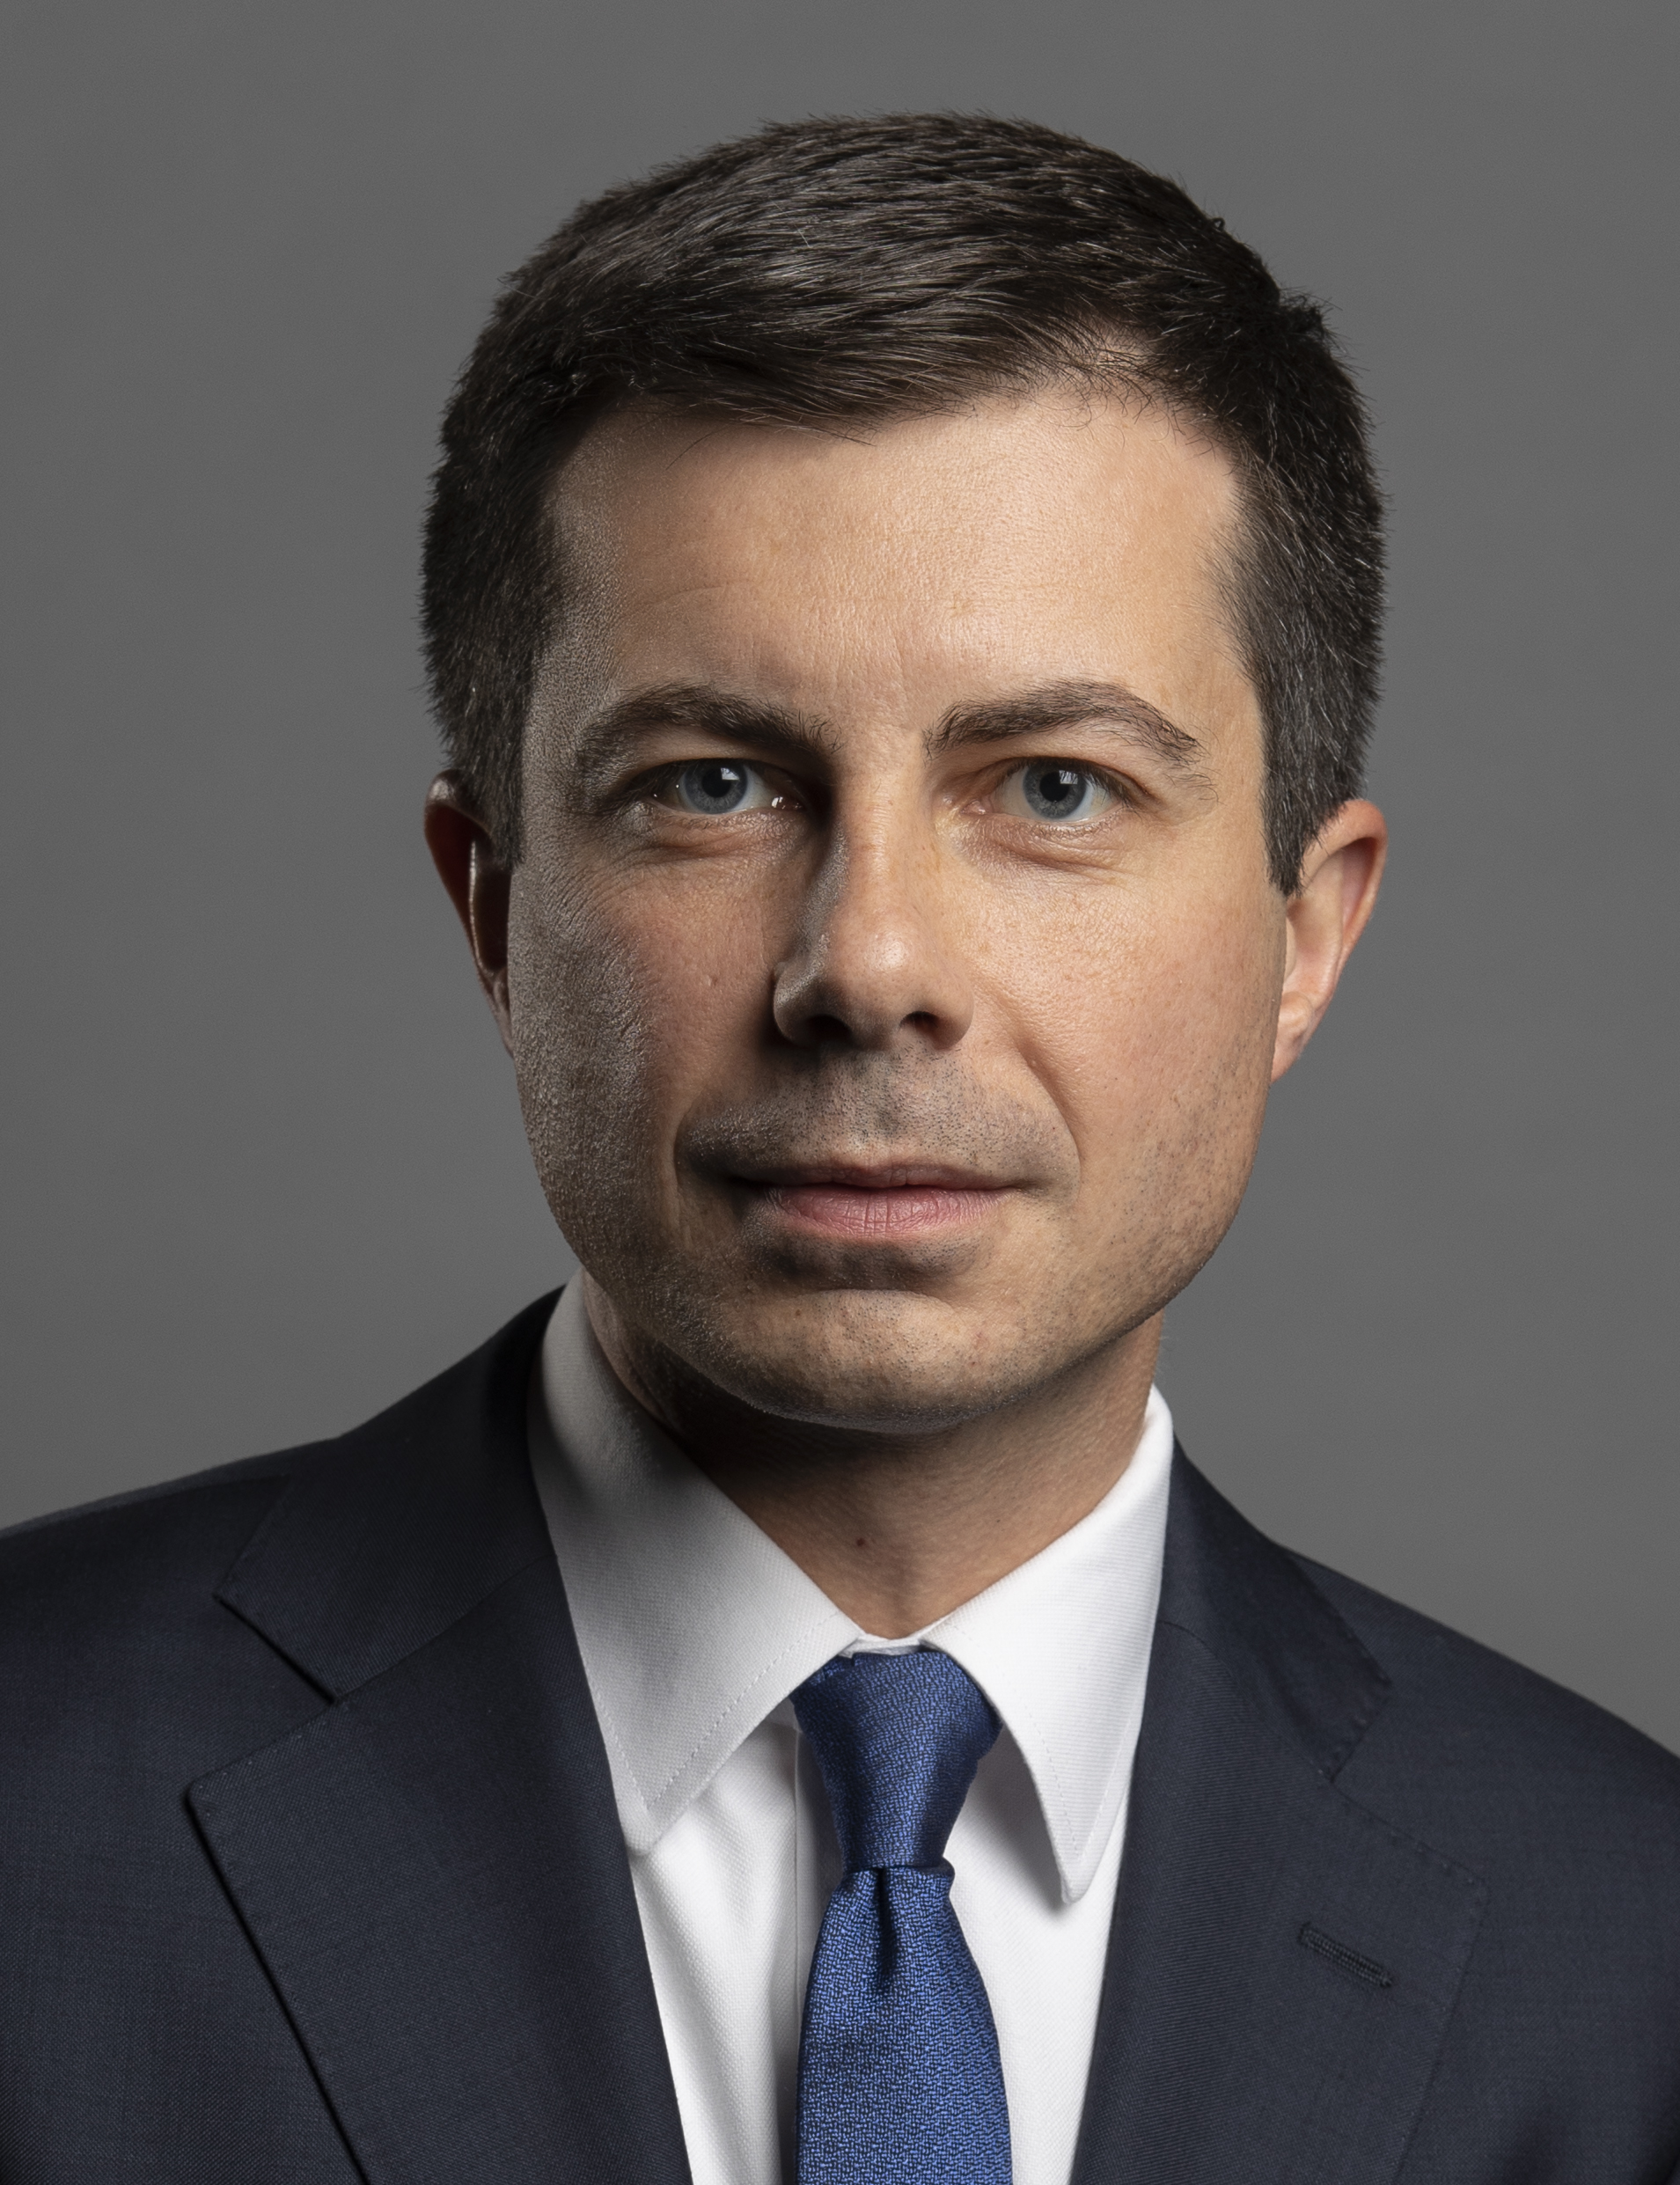 buttigieg mug shot